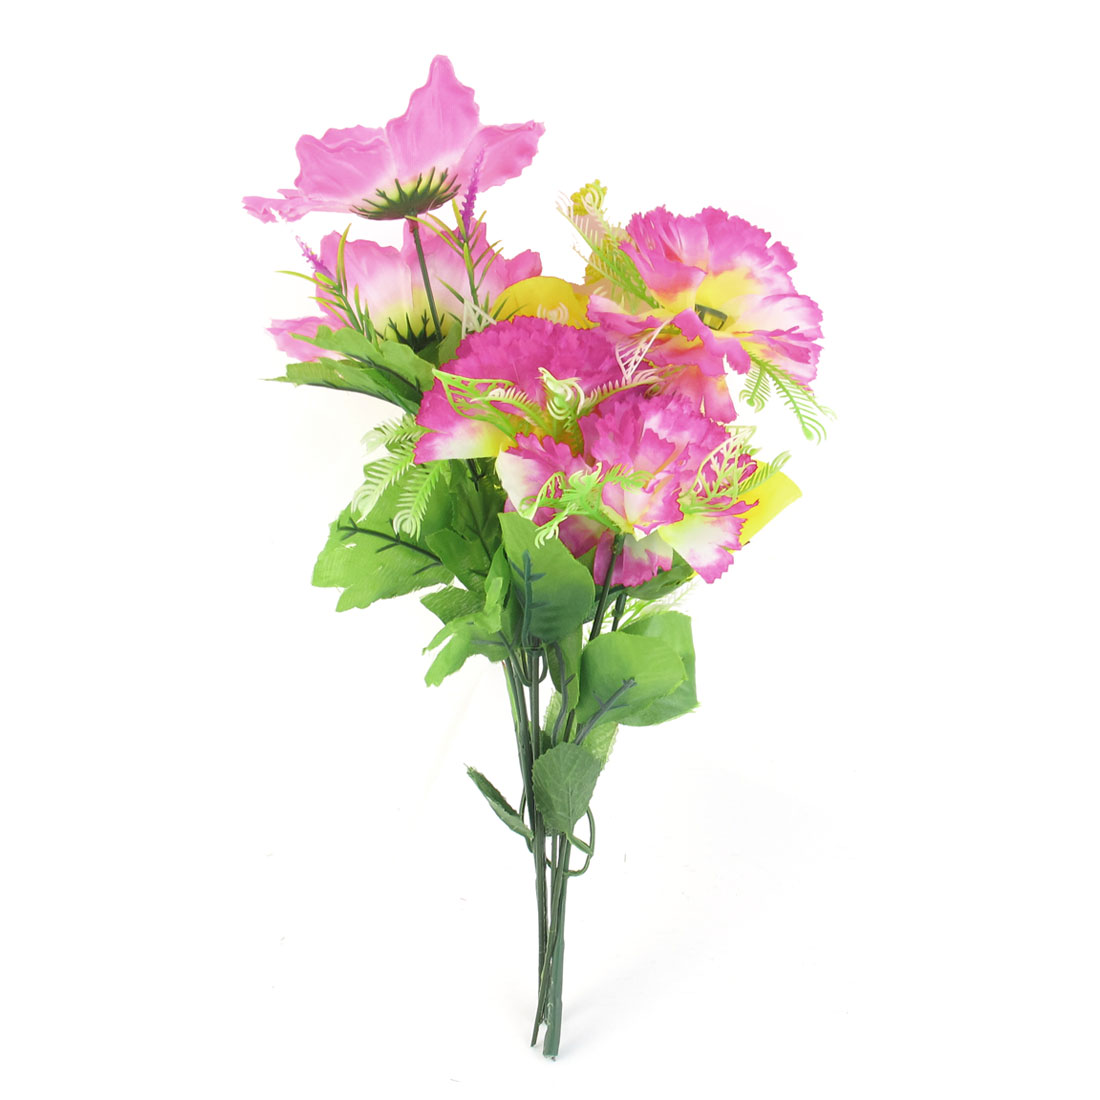 "Green Pink Blooming Artificial Flower Home Decor Party Bouquet 15.7"" High"